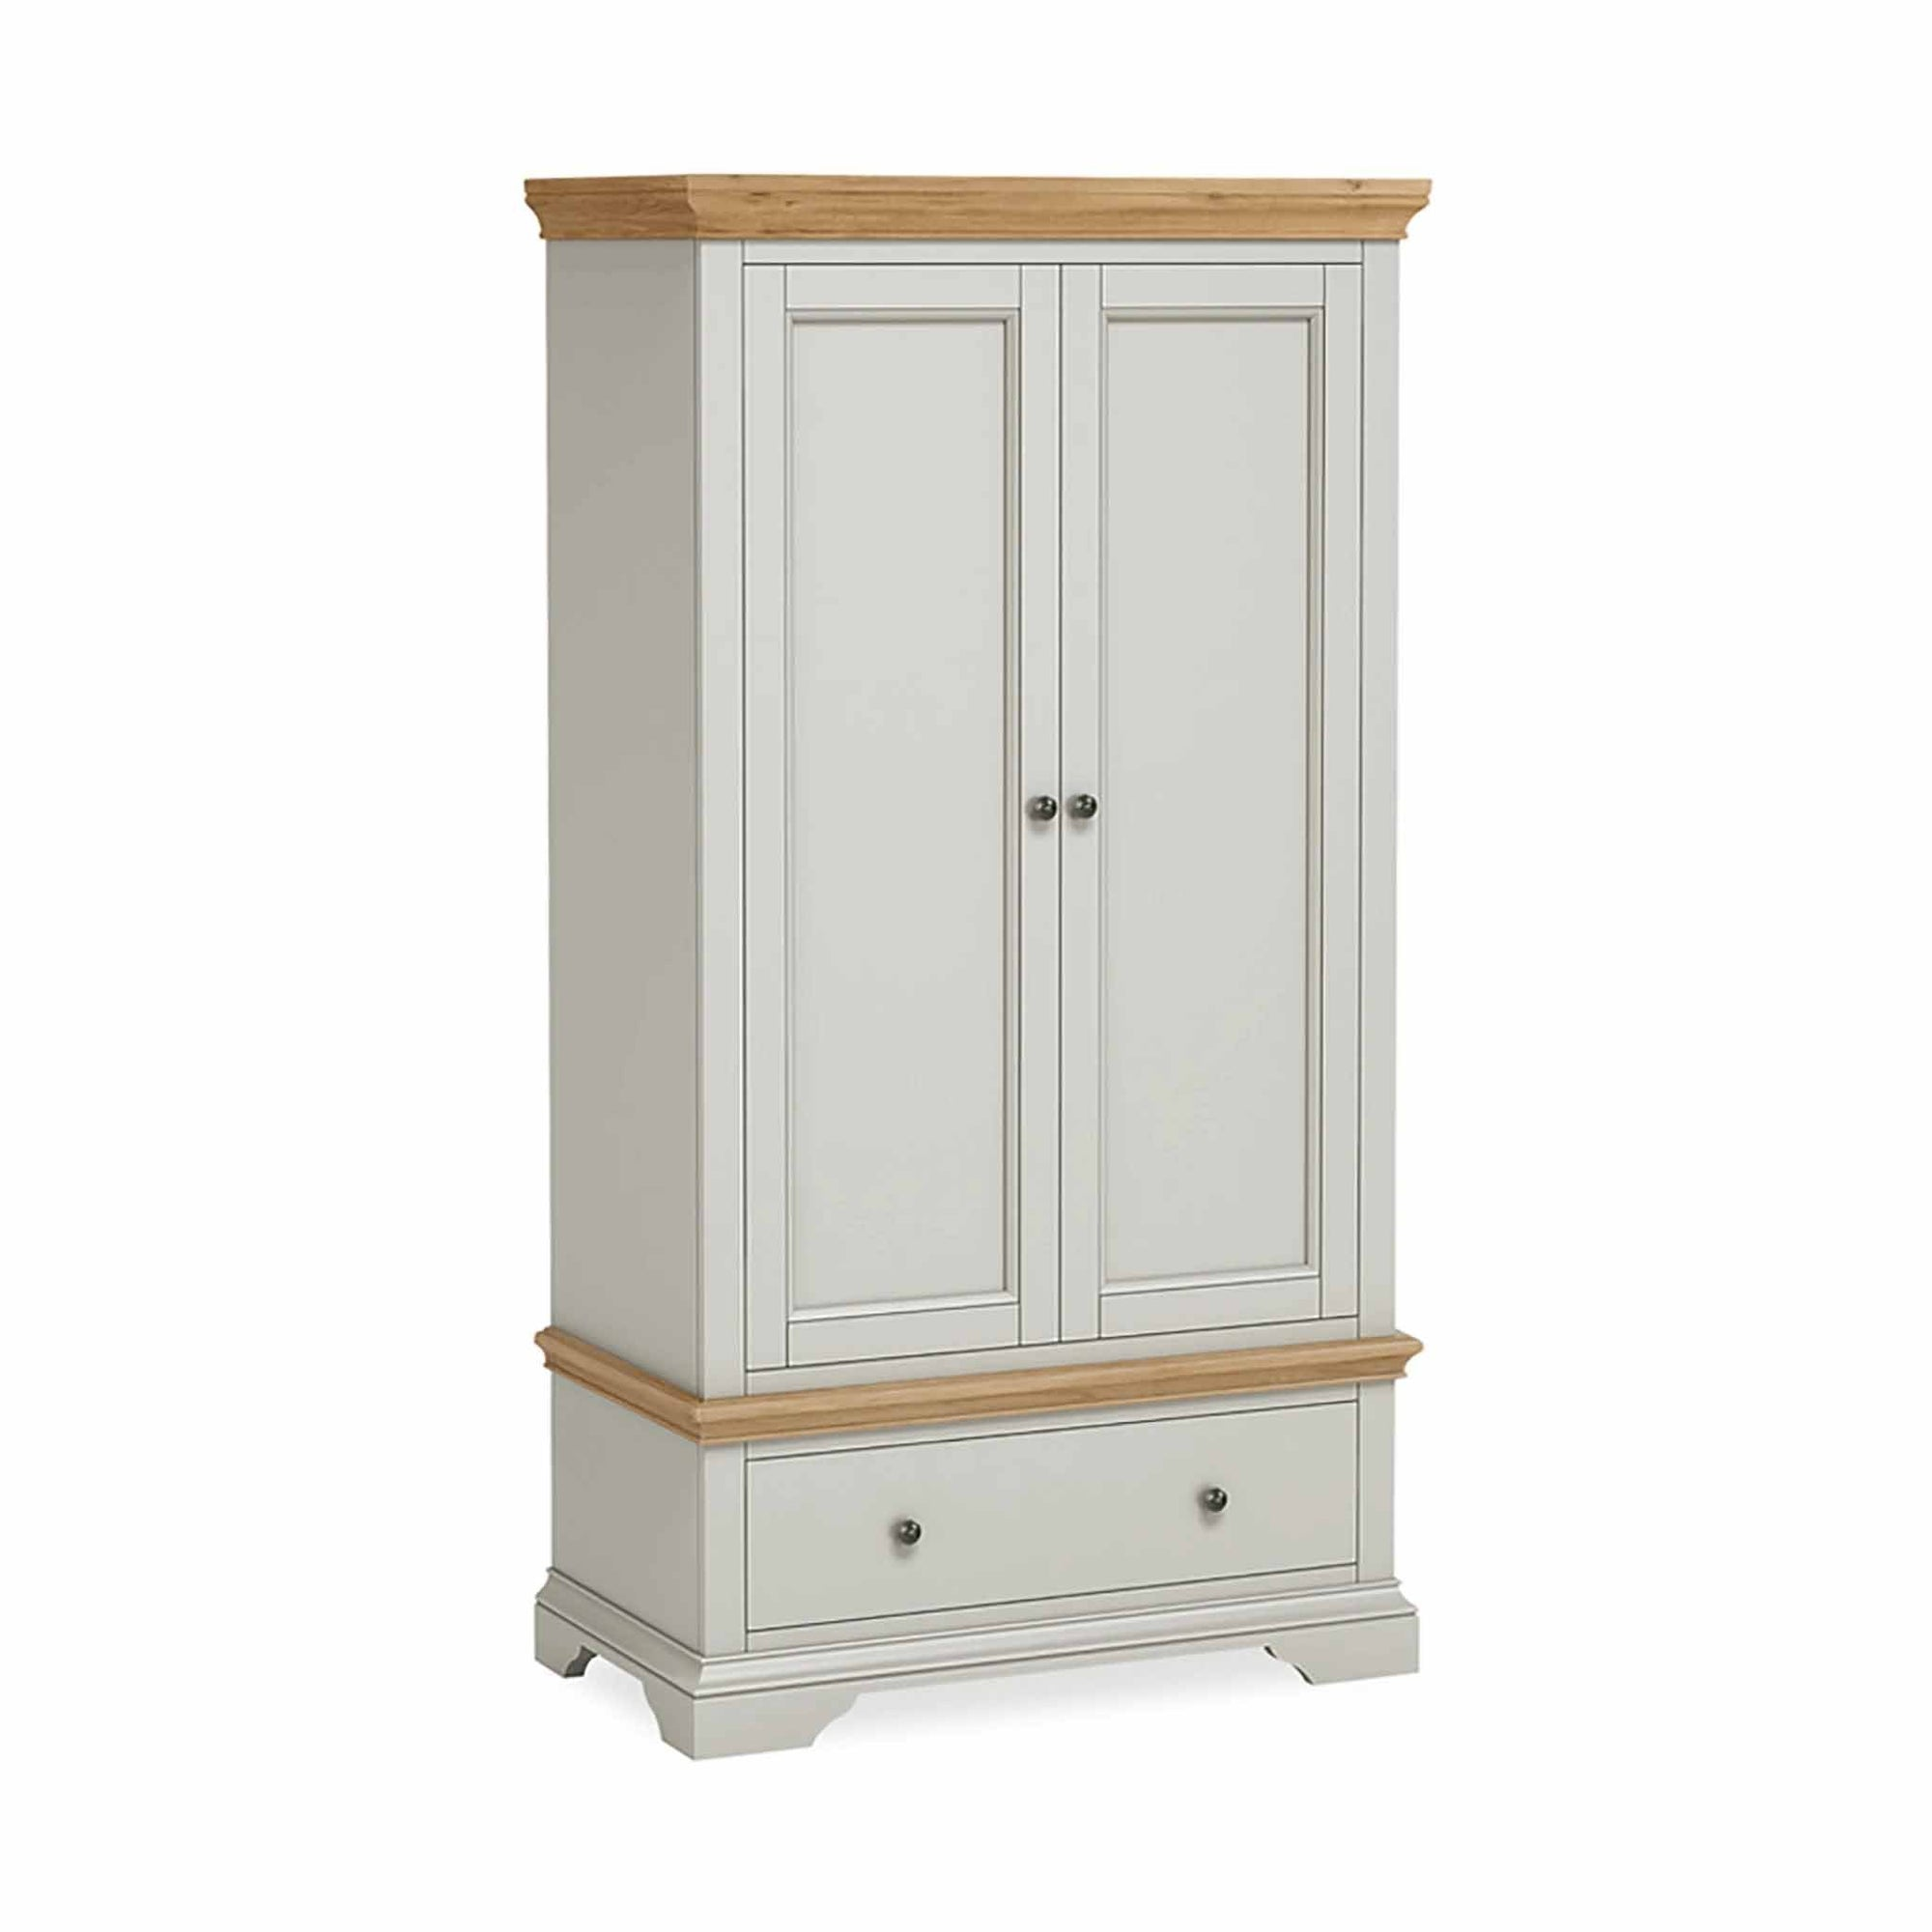 Normandy Grey Double Wardrobe with Drawer by Roseland Furniture